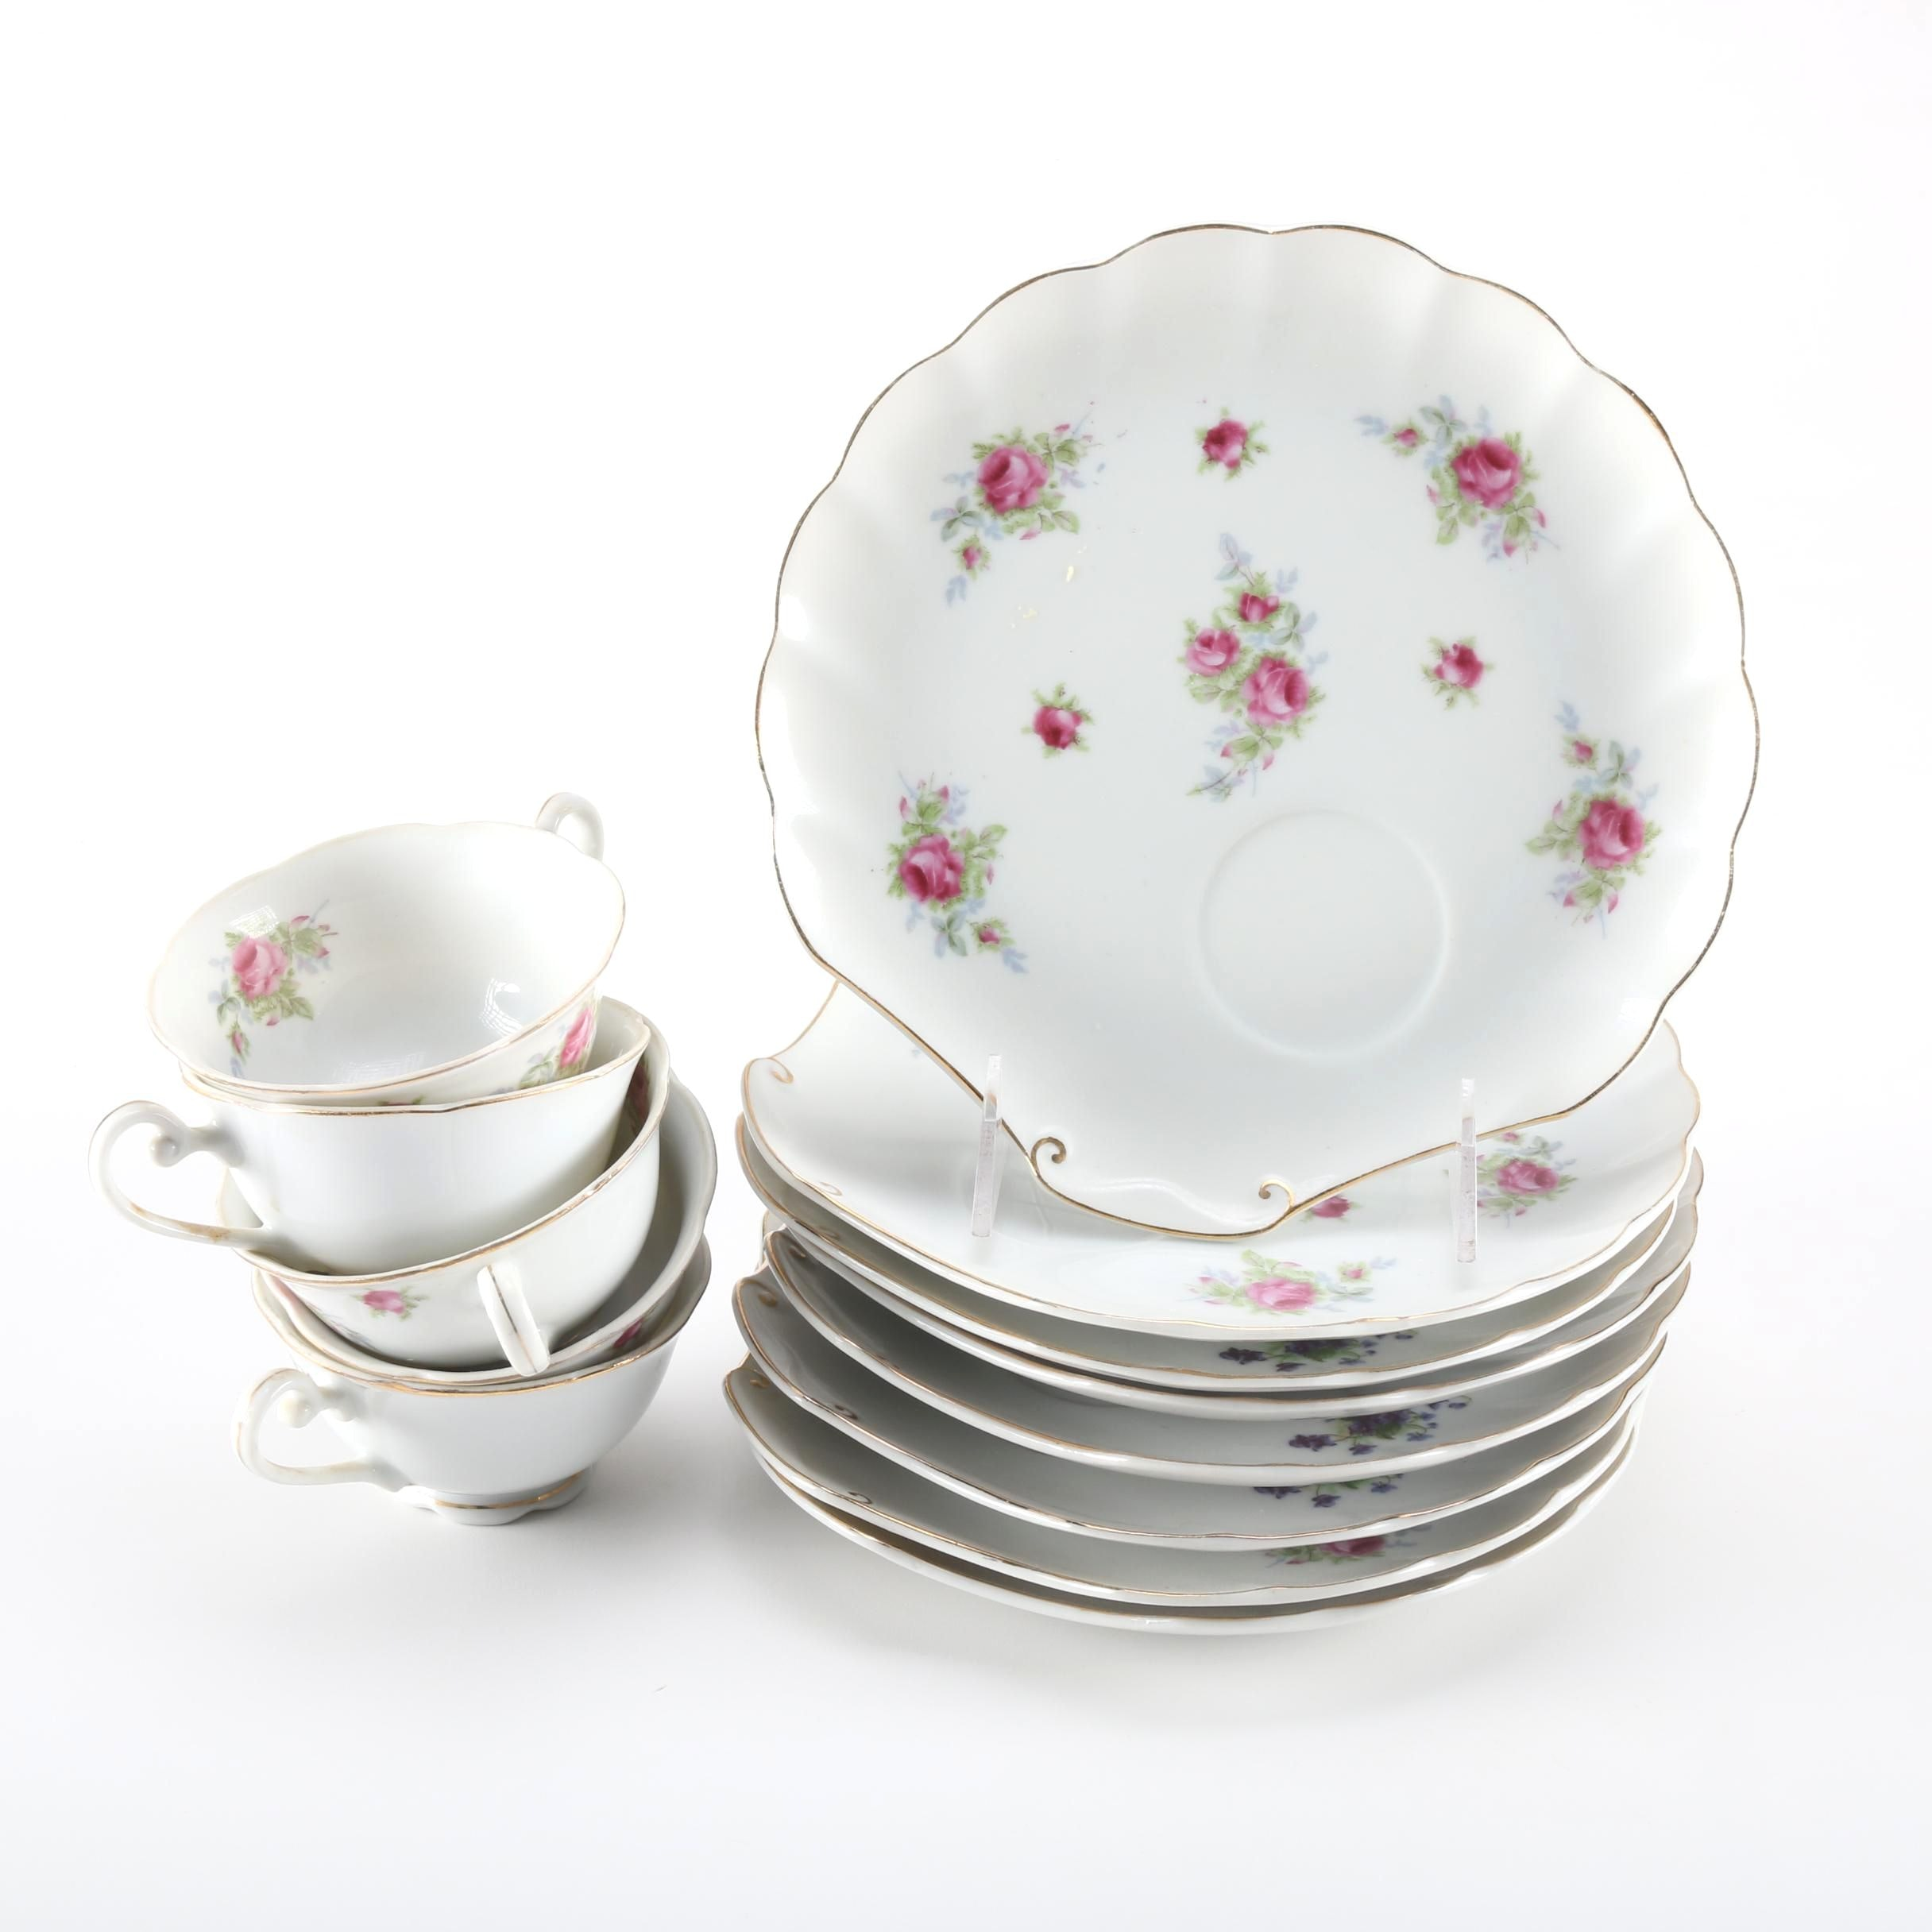 Lefton China Snack Set